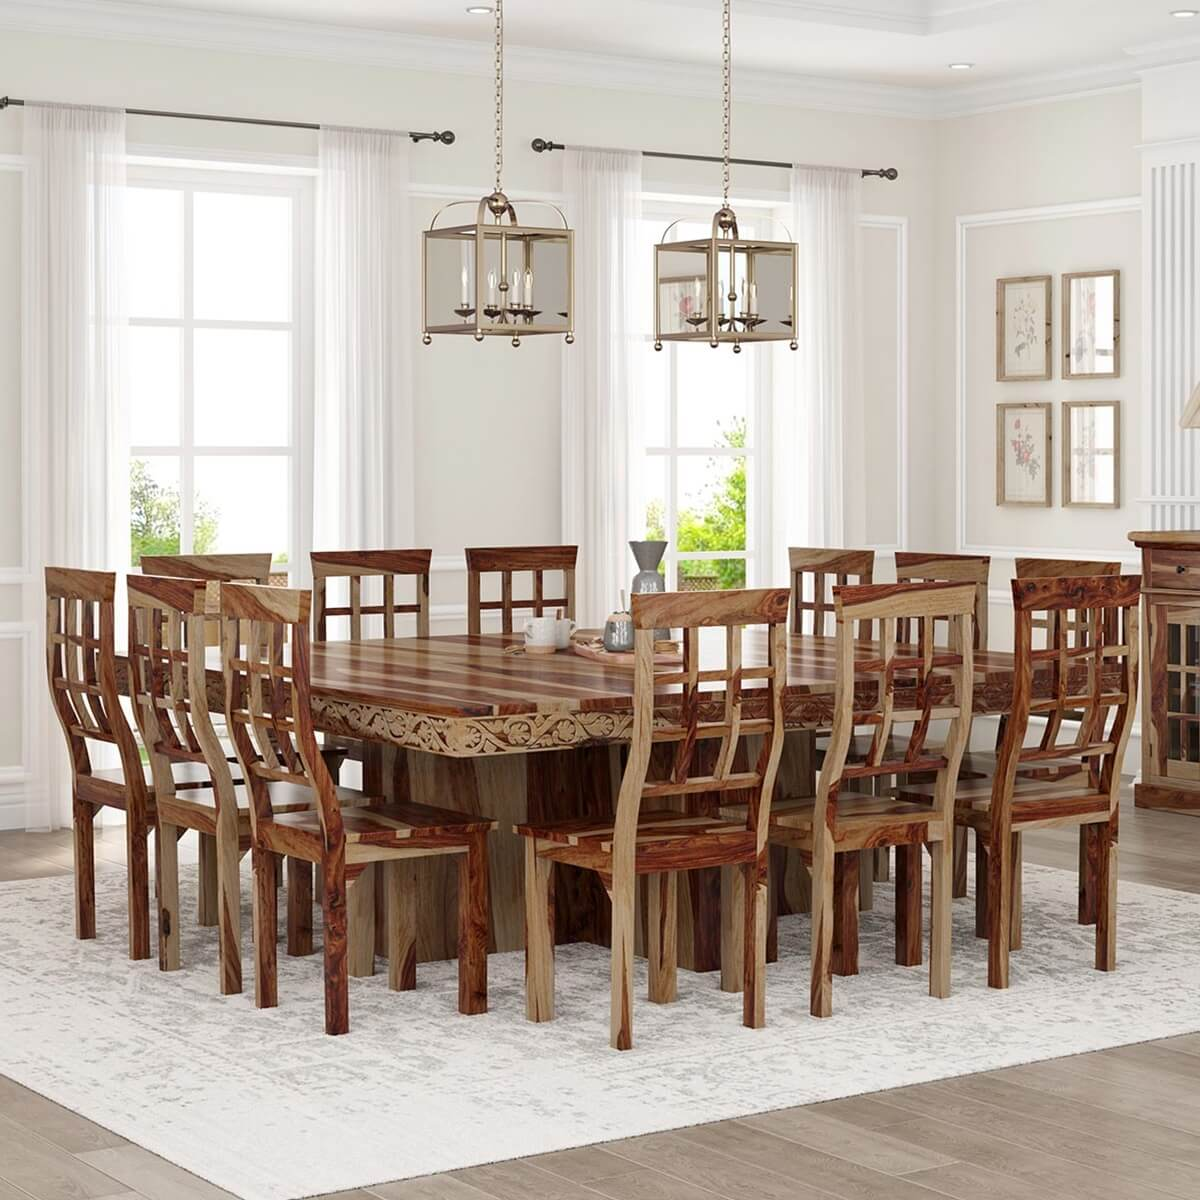 dallas ranch large square dining room table and chair set for 12 - Dining Room Furniture Dallas